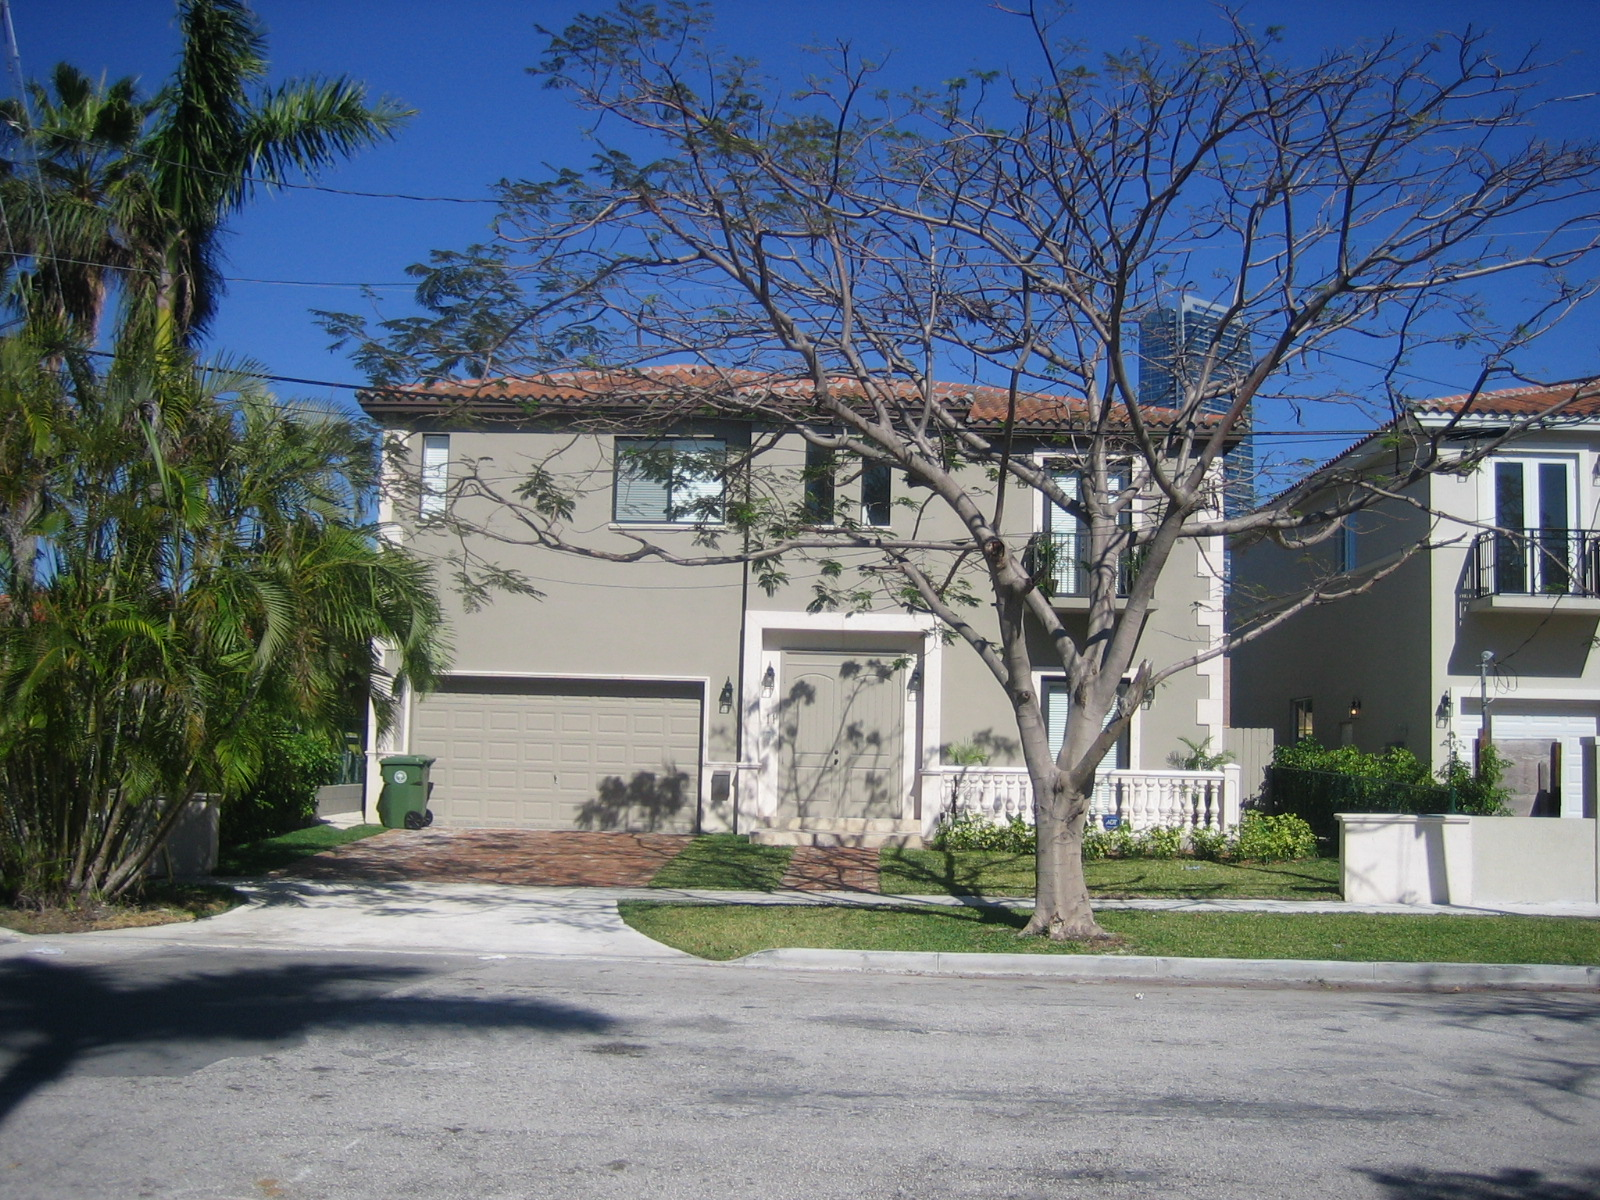 South Miami Ave Houses 3